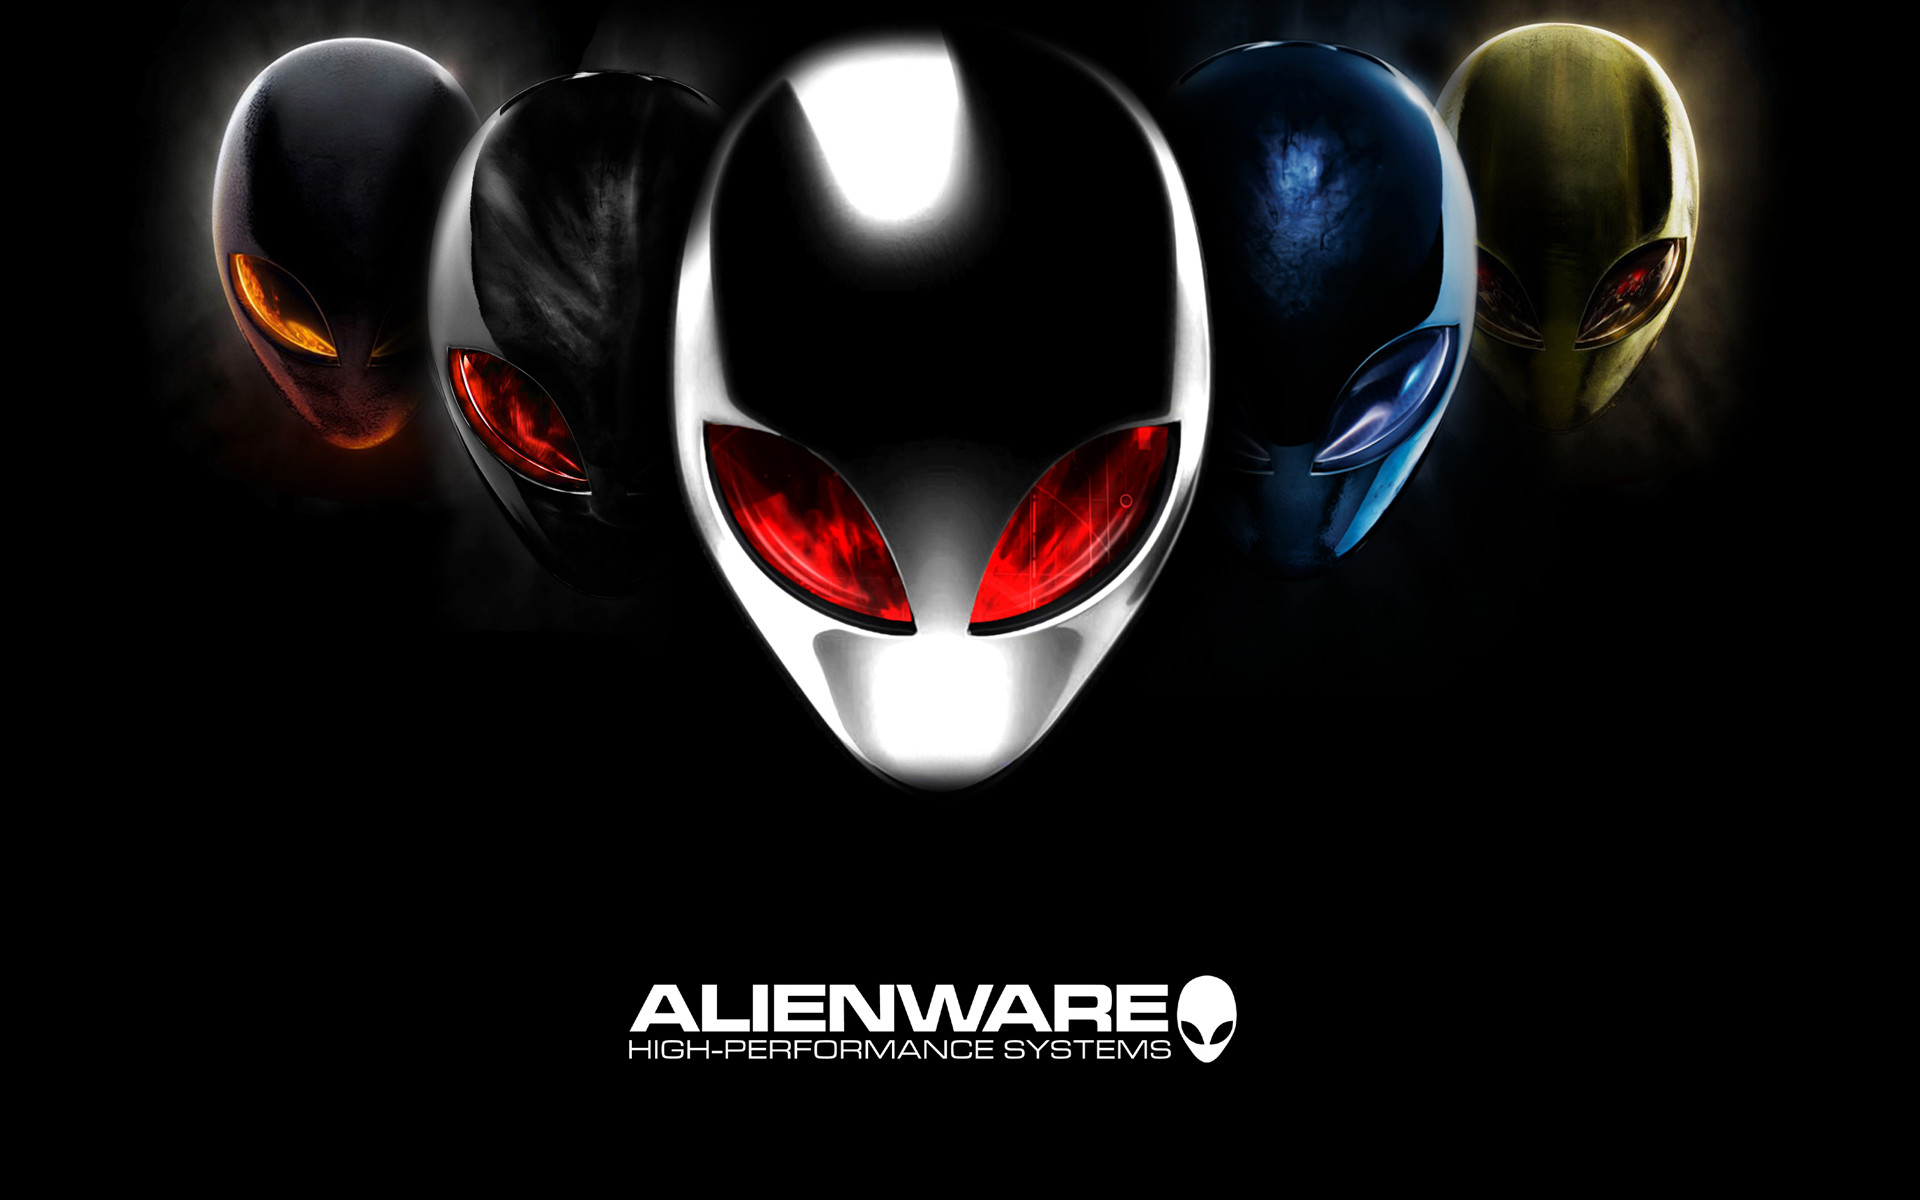 4k Alienware Wallpaper 72 Images